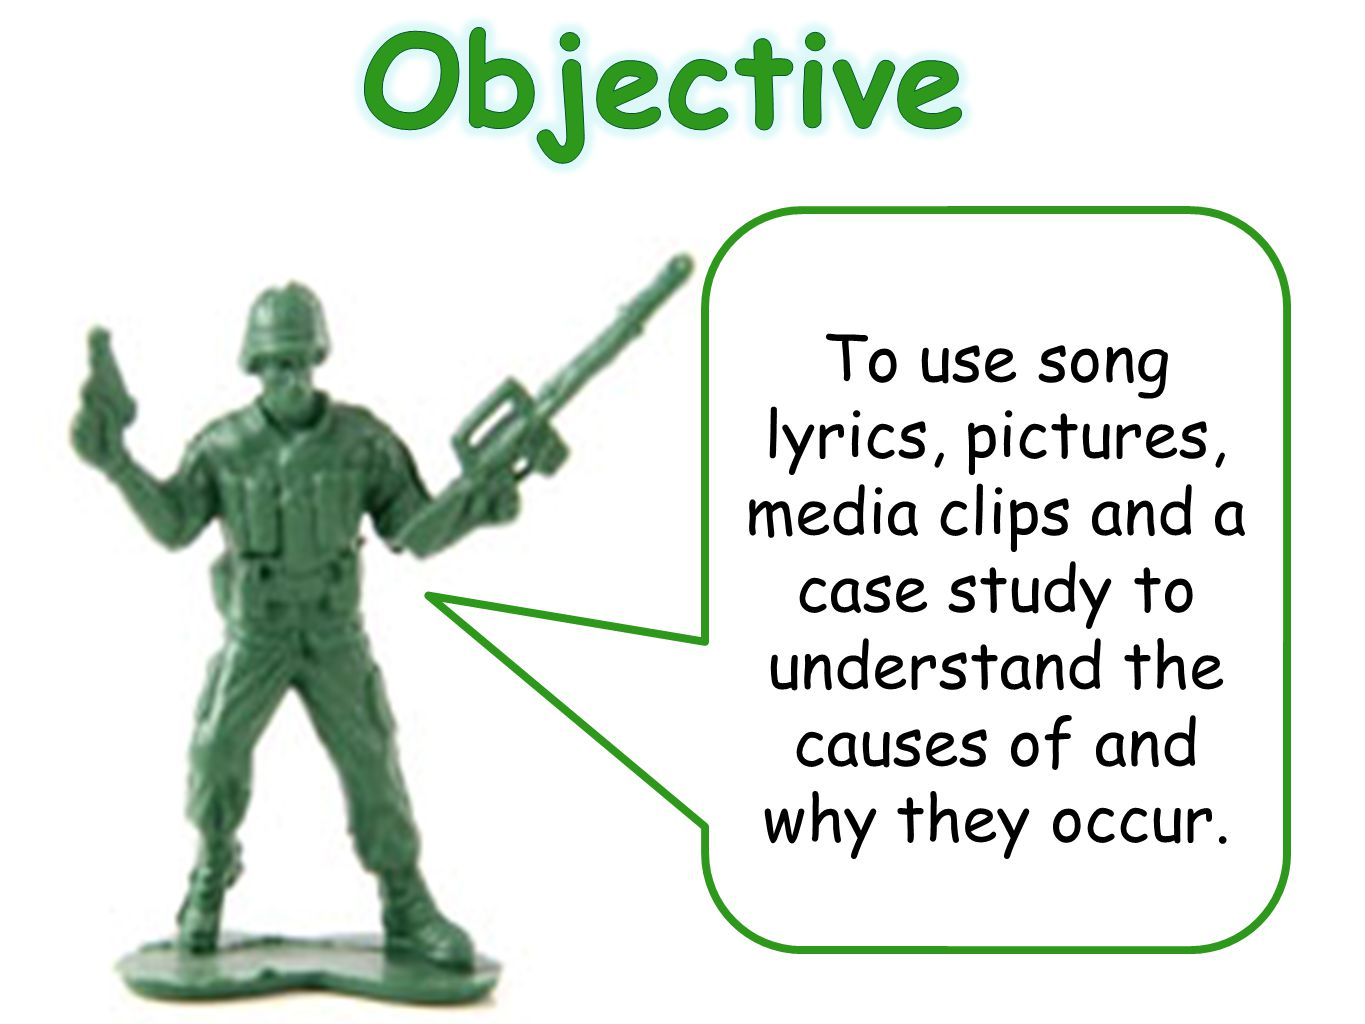 Objective To use song lyrics, pictures, media clips and a case study to understand the causes of and why they occur.